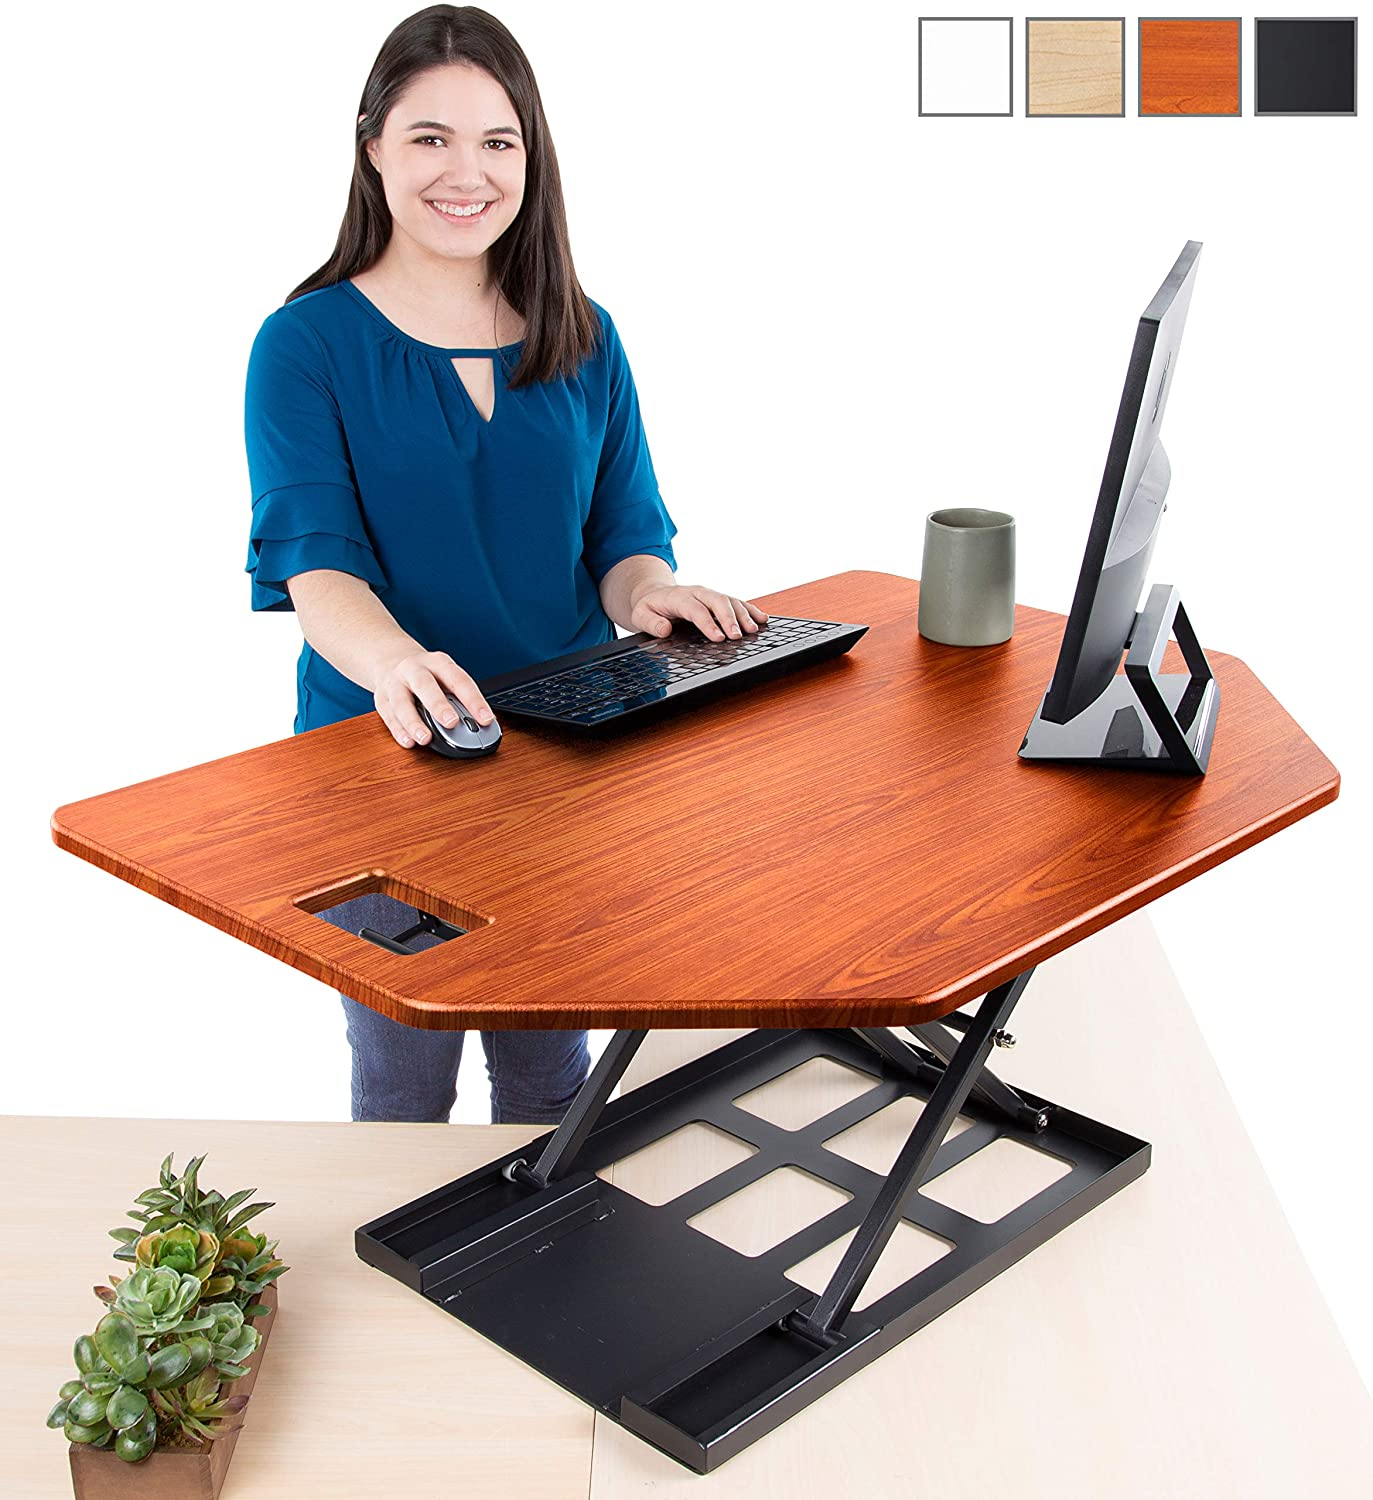 Stand Steady X-Elite Pro Corner Standing Desk | 40 Inch Corner Sit to Stand Desk Converter Ideal for Cubicles and L Shaped Desks! Easy Height-Adjustable and Fully Assembled! (Cherry)